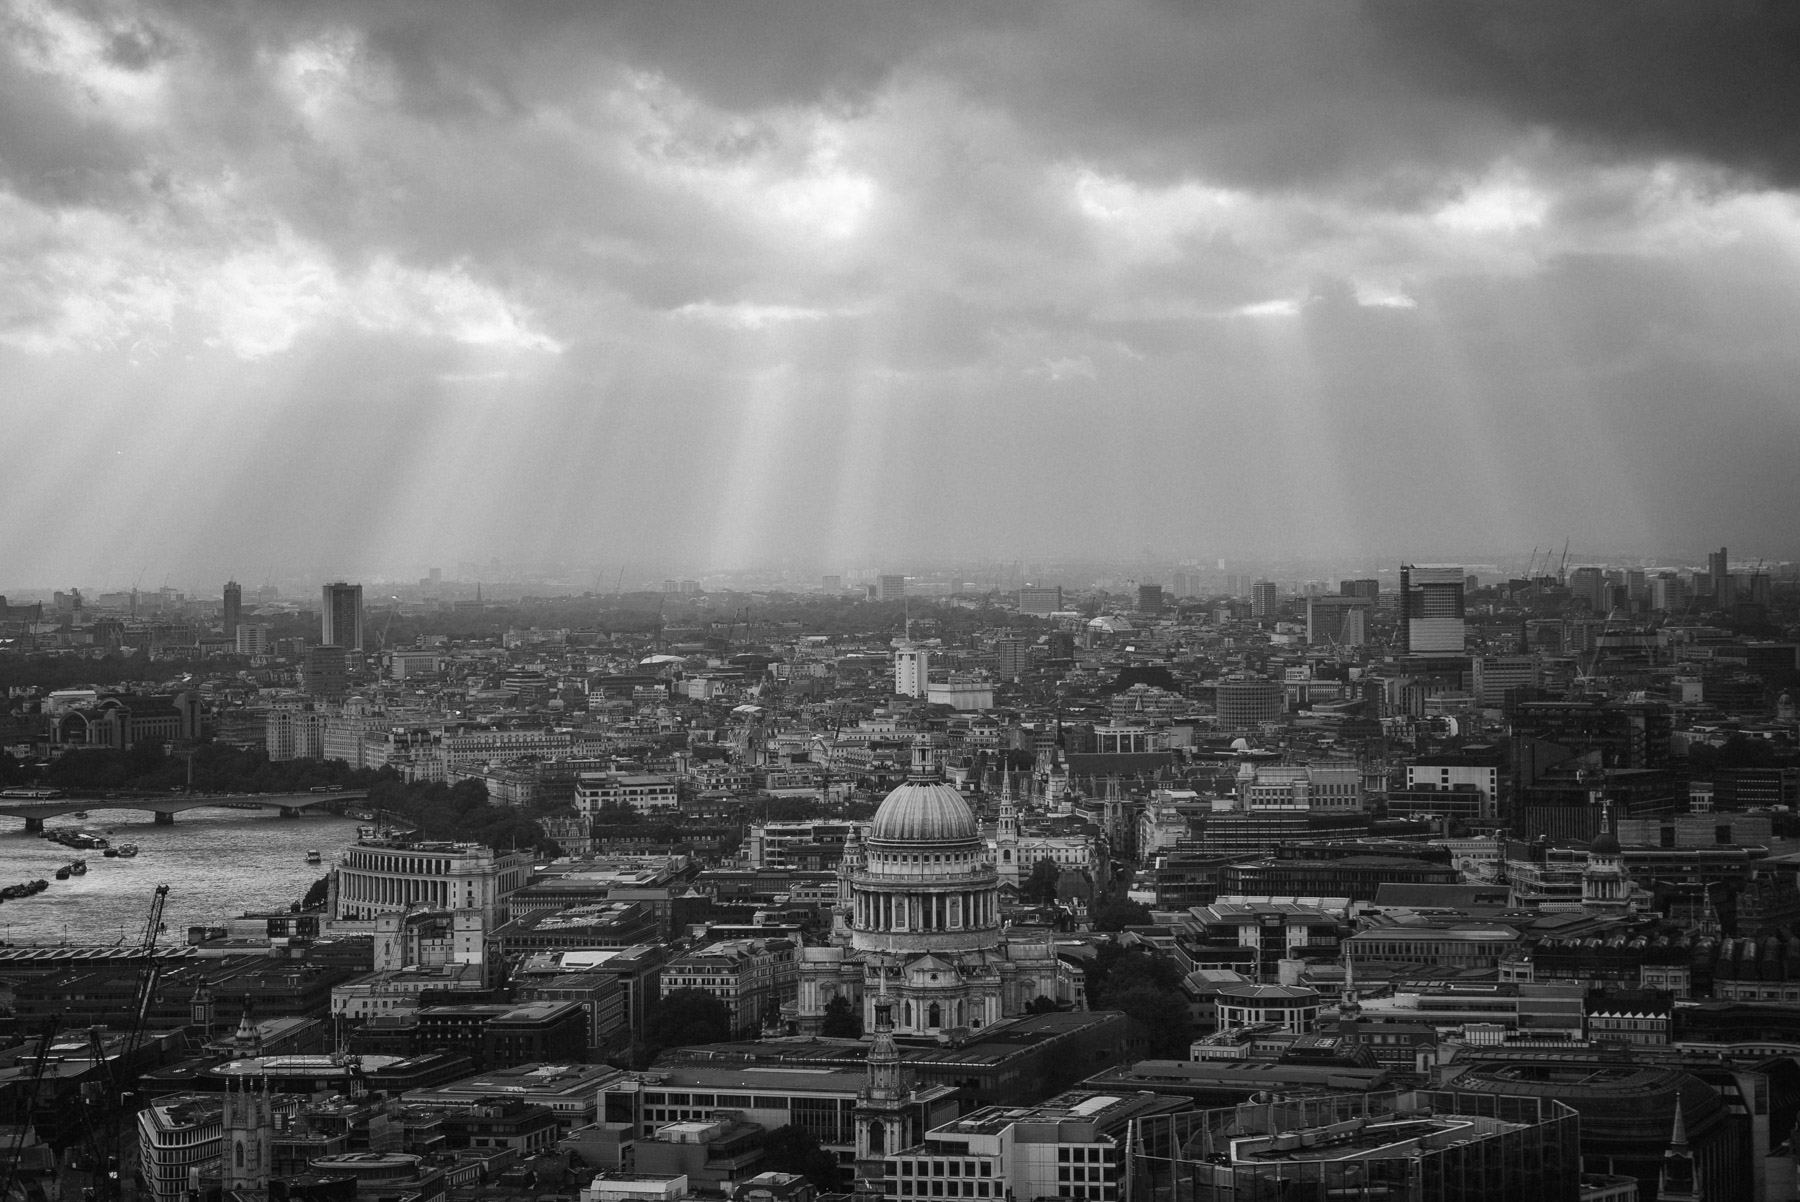 the London skyline view from the Gherkin